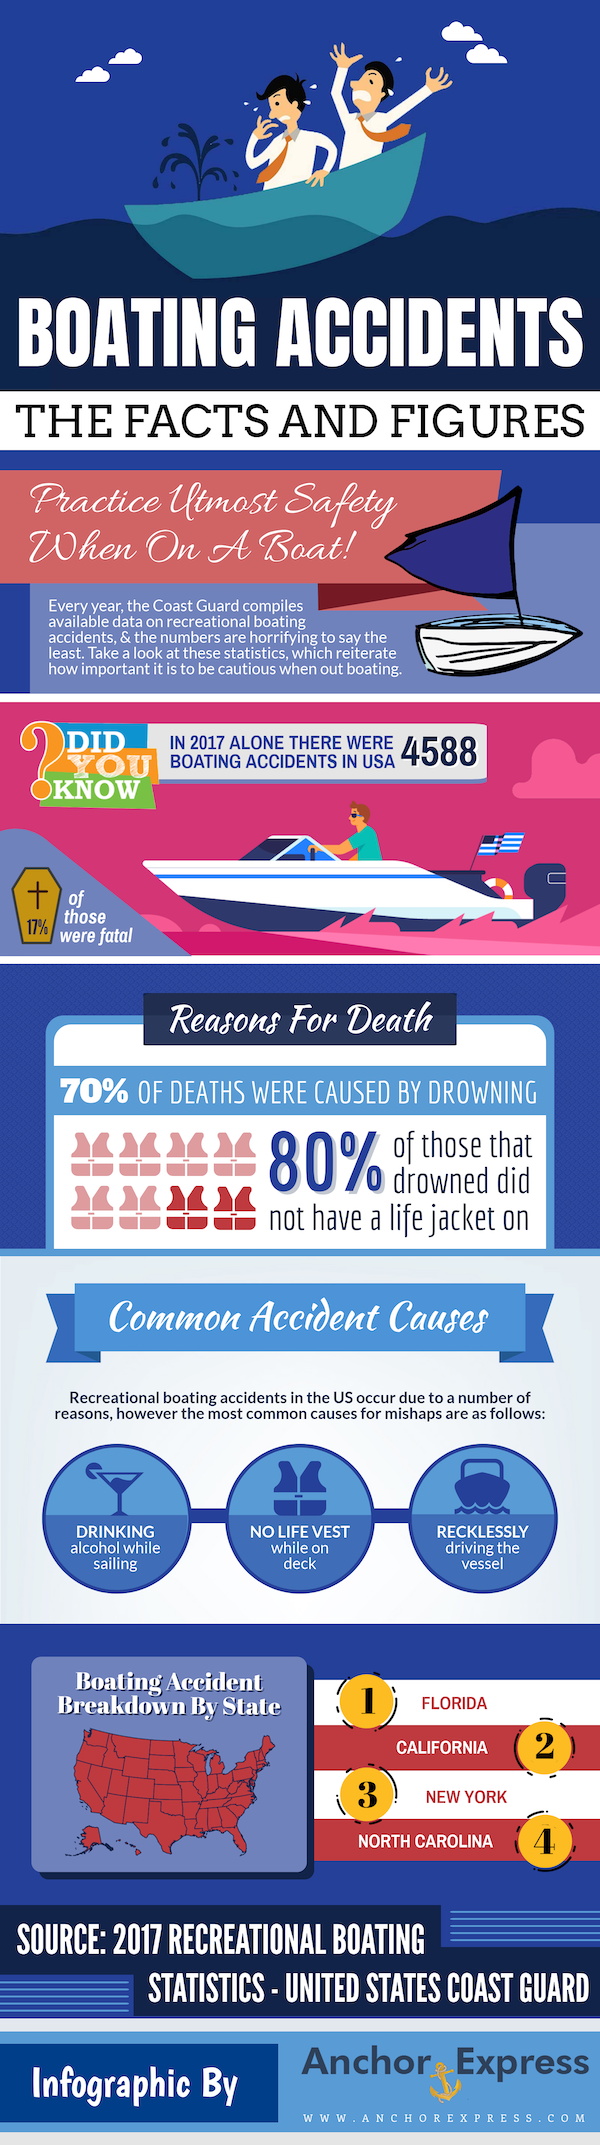 Boating Accidents Facts & Figures #infographic